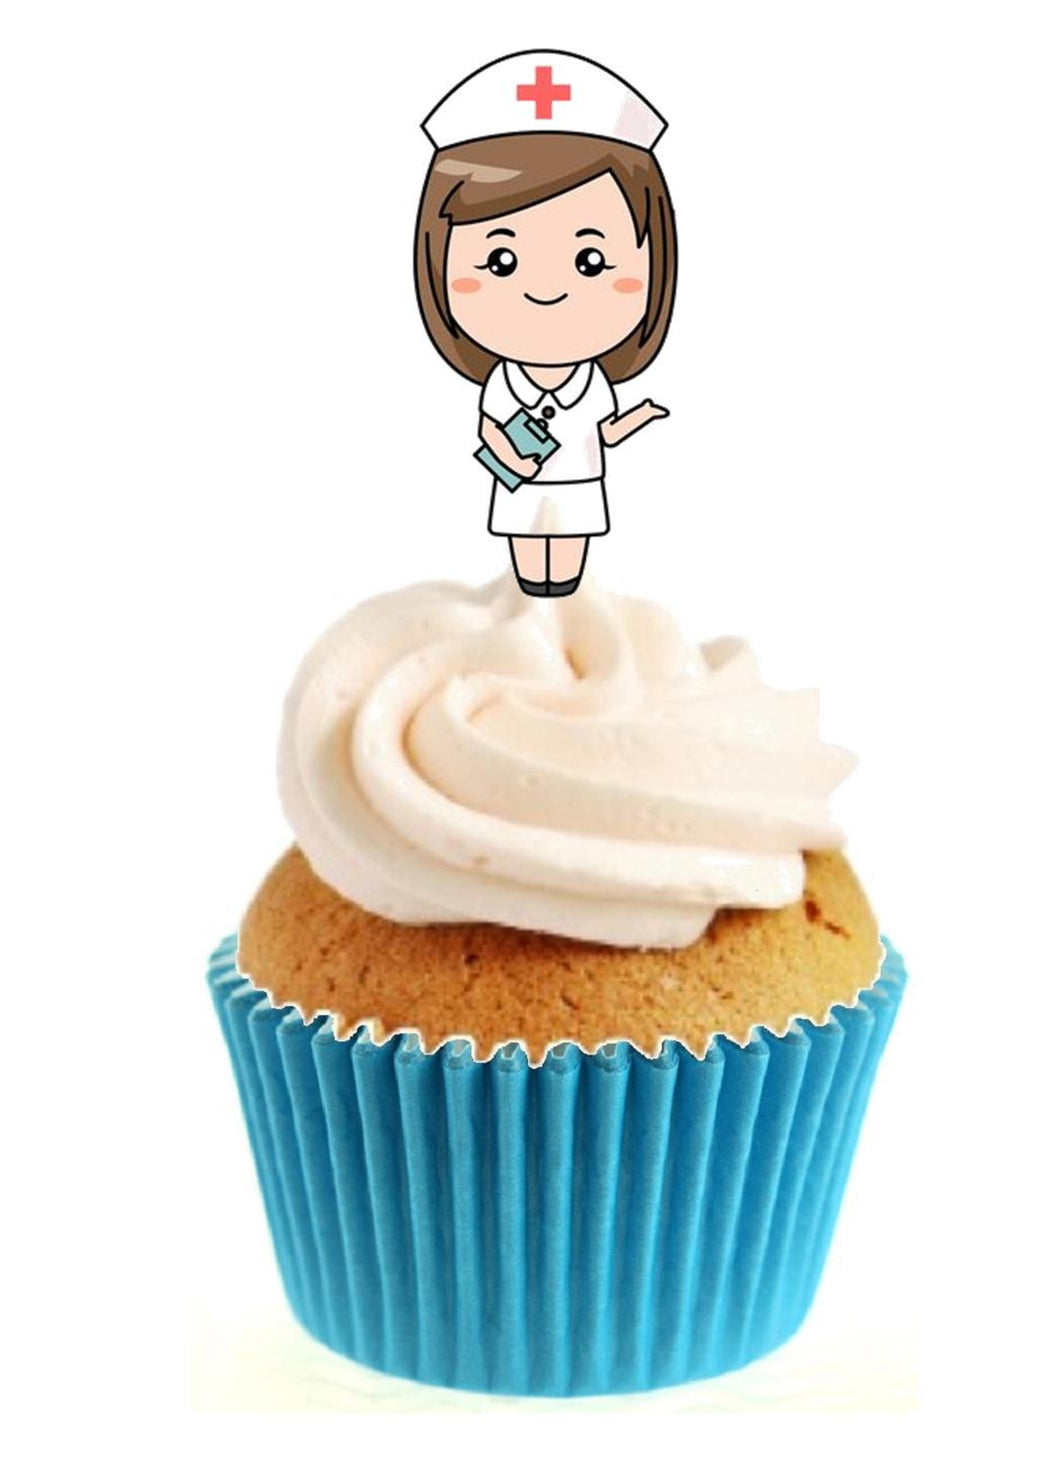 Nurse Stand Up Cake Toppers (12 pack)